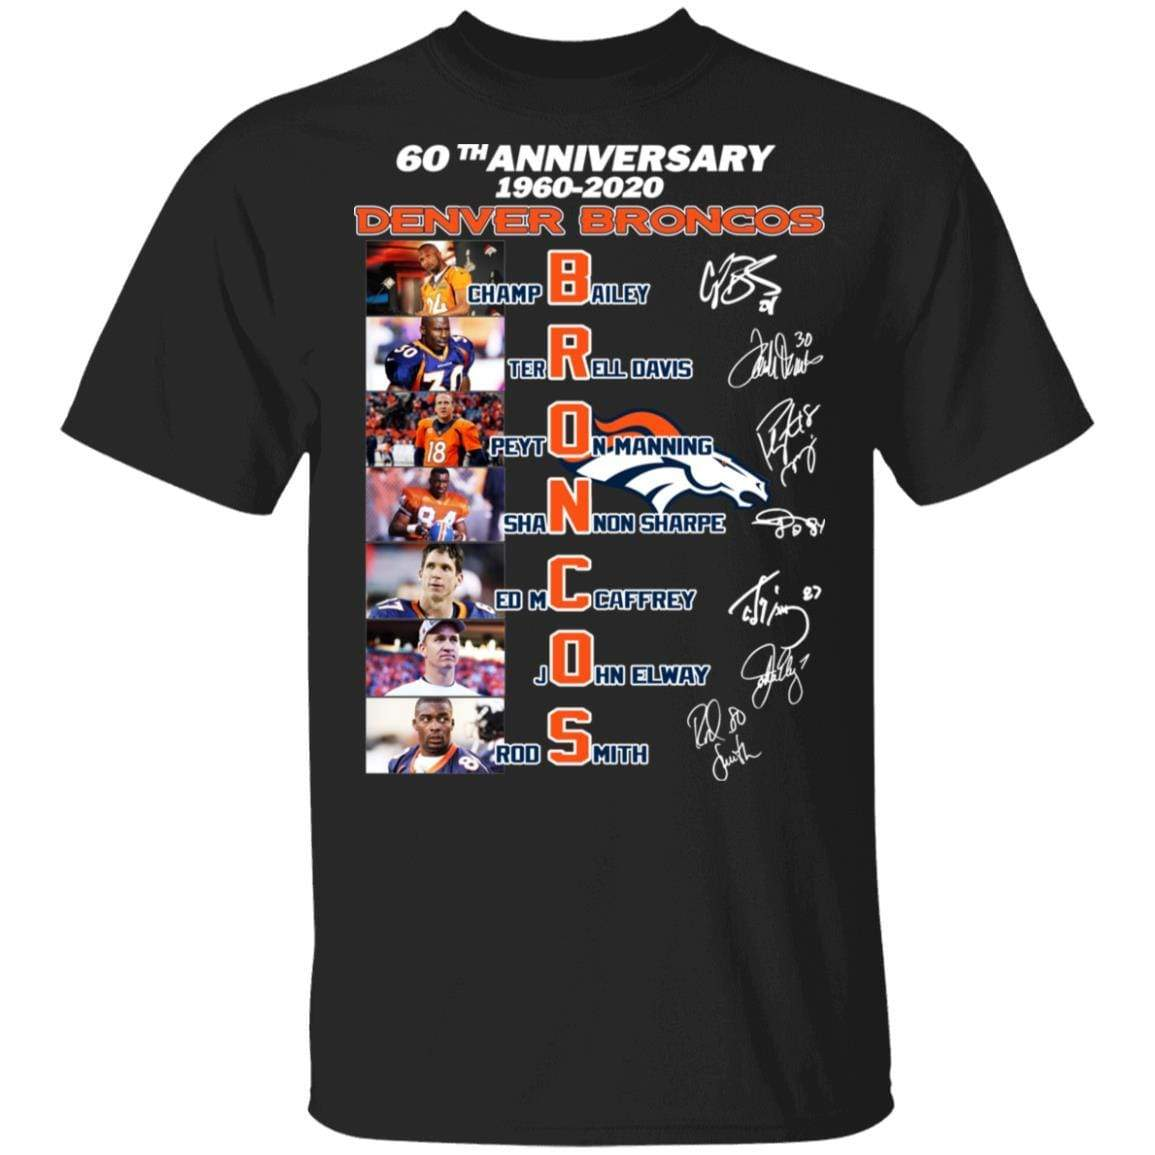 60th Anniversary Denver Broncos 1960 2020 T-Shirts, Hoodies 1049-9953-88478050-48144 - Tee Ript